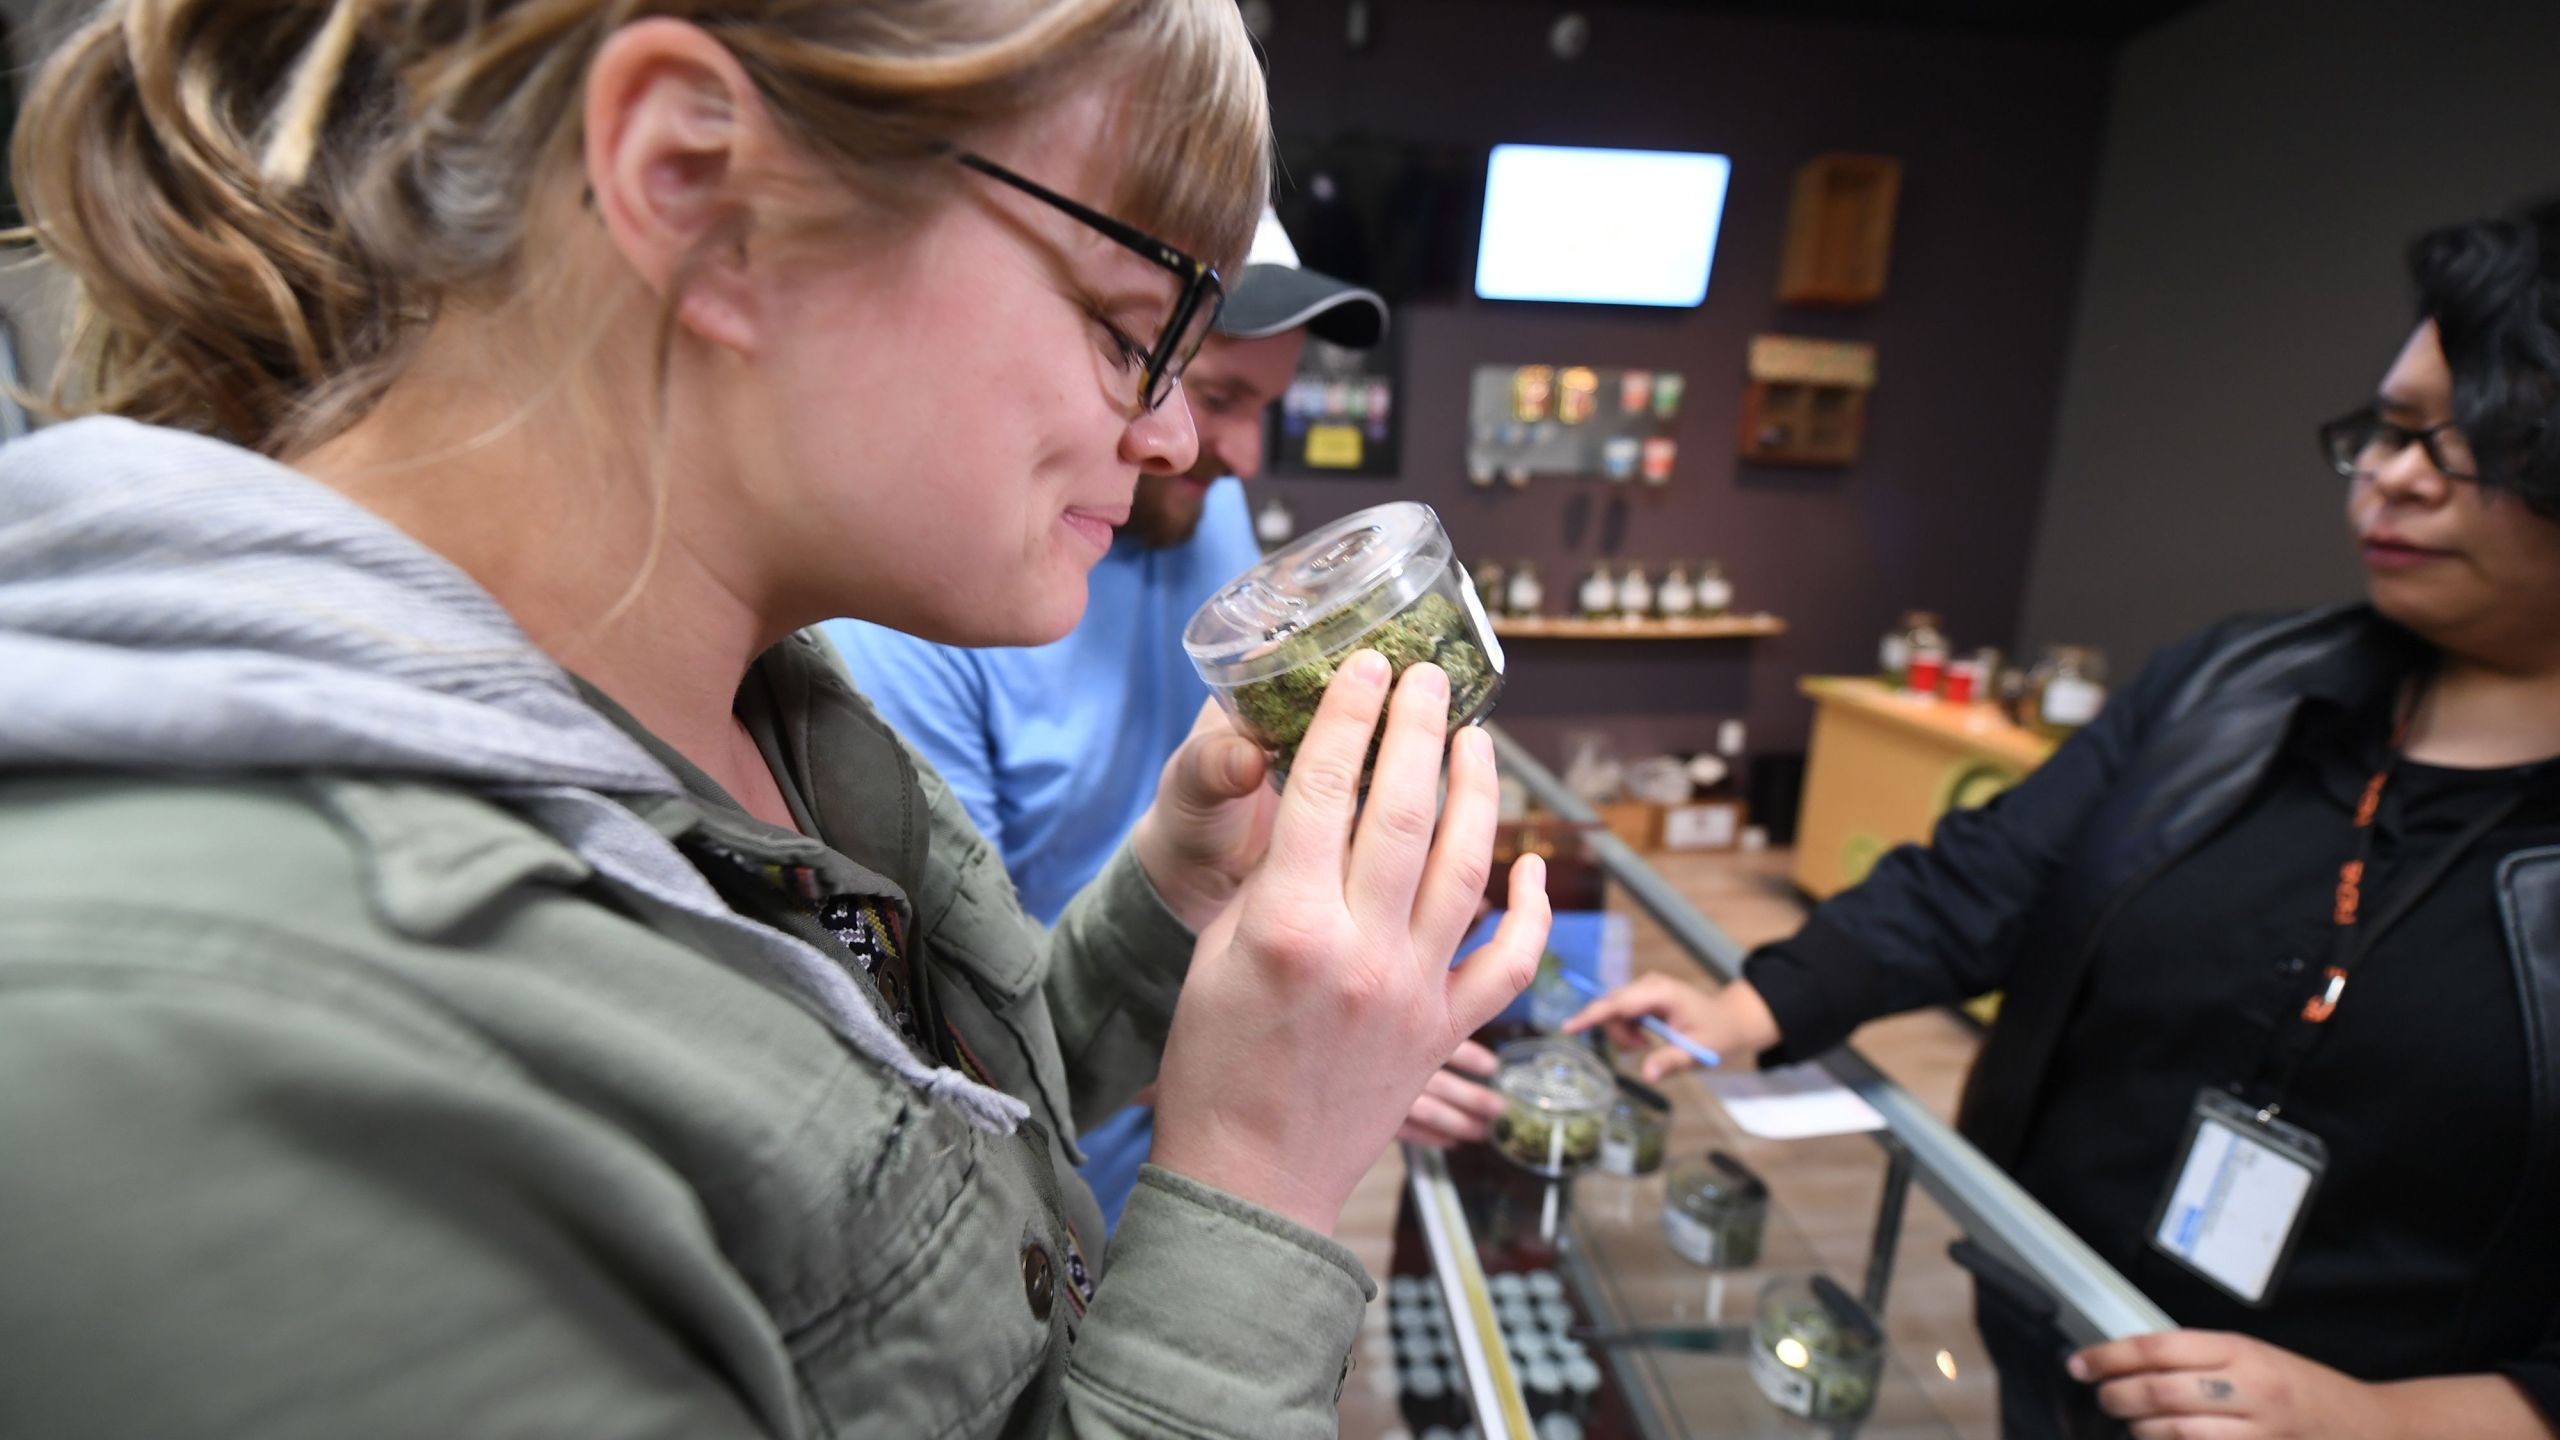 Tourist Laura Torgerson, visiting from Arizona, smells cannabis buds at the Green Pearl Organics dispensary in Desert Hot Springs on the first day of legal recreational marijuana sales in California, Jan. 1, 2018. (Credit: Robyn Beck / AFP / Getty Images)